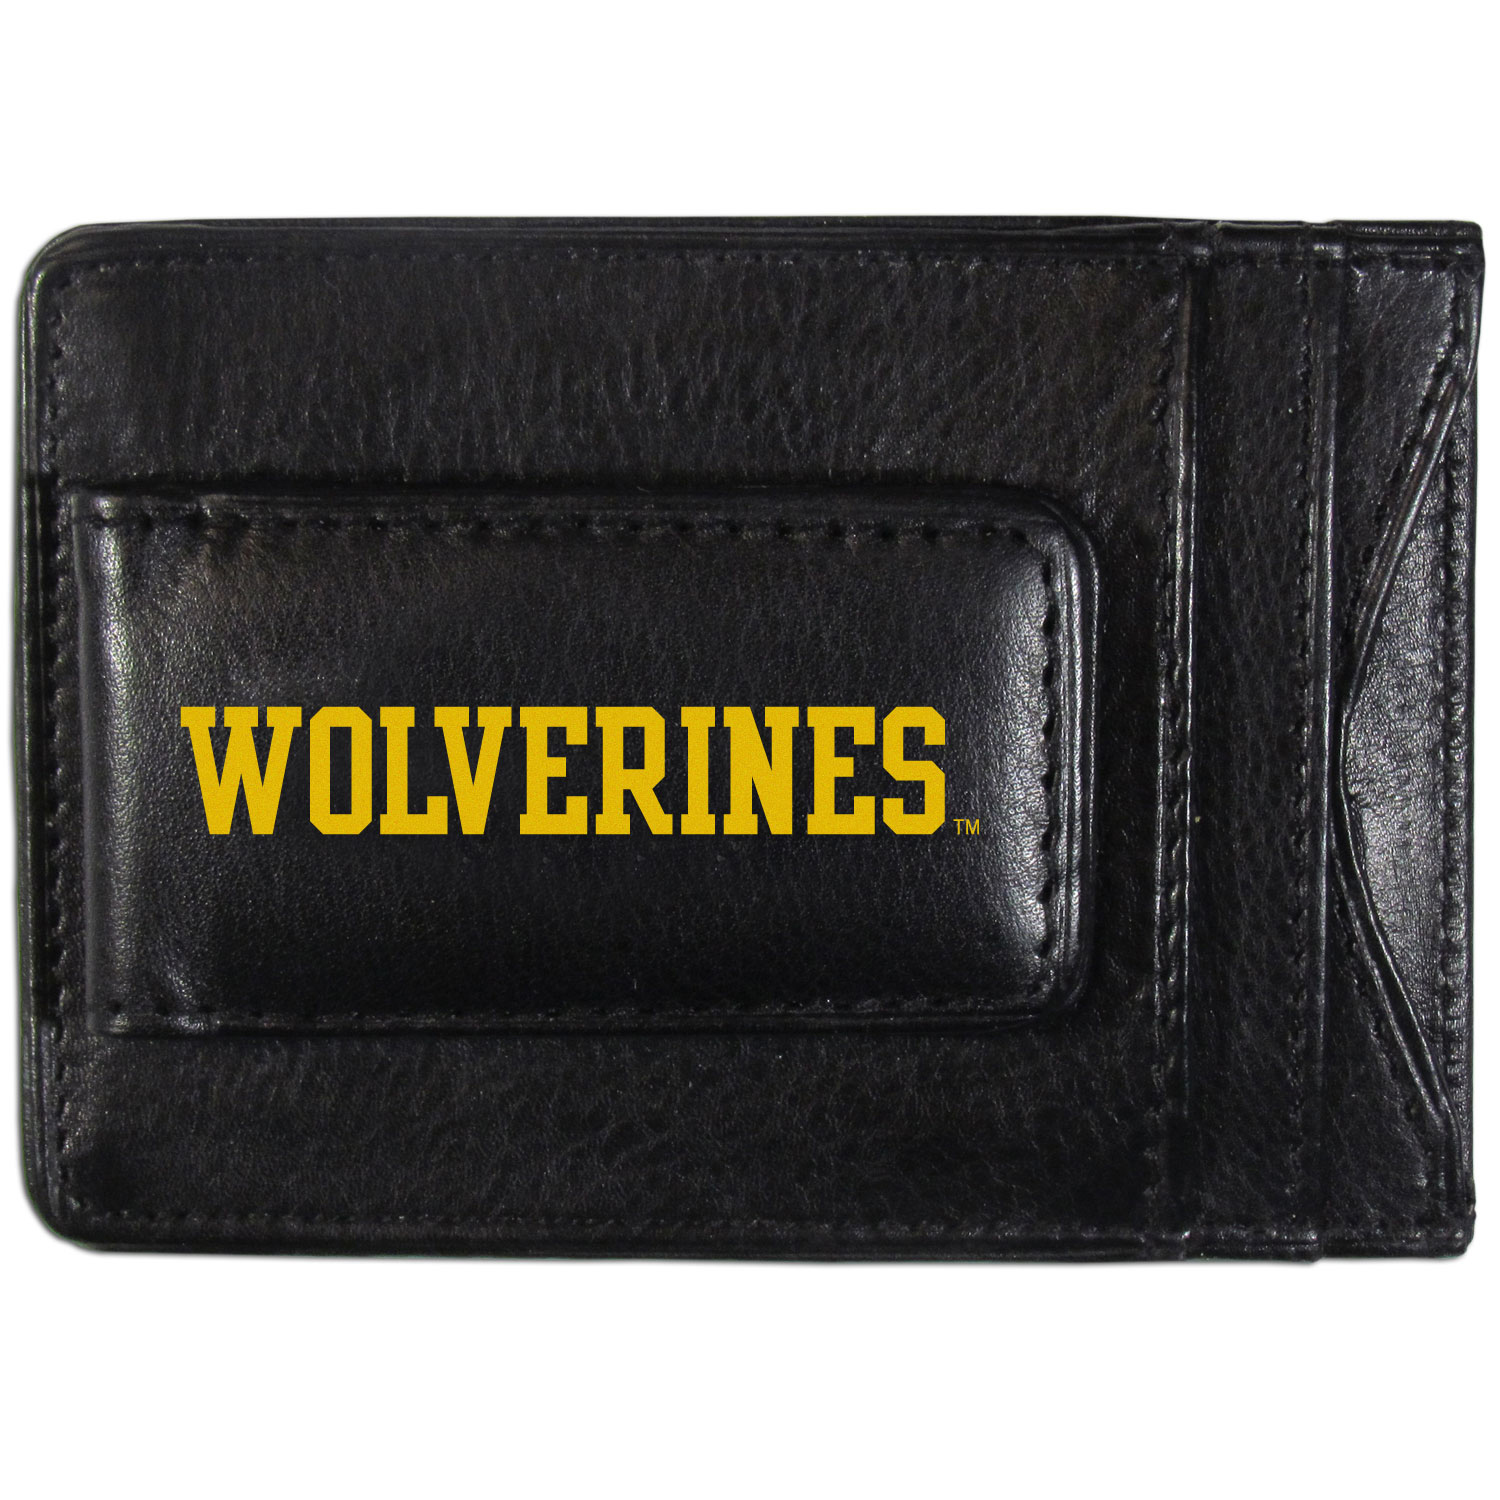 Michigan Wolverines Logo Leather Cash and Cardholder - This super slim leather wallet lets you have all the benefits of a money clip while keeping the organization of a wallet. On one side of this front pocket wallet there is a strong, magnetic money clip to keep your cash easily accessible and the?Michigan Wolverines team logo on the front. The versatile men's accessory is a perfect addition to your fan apparel.